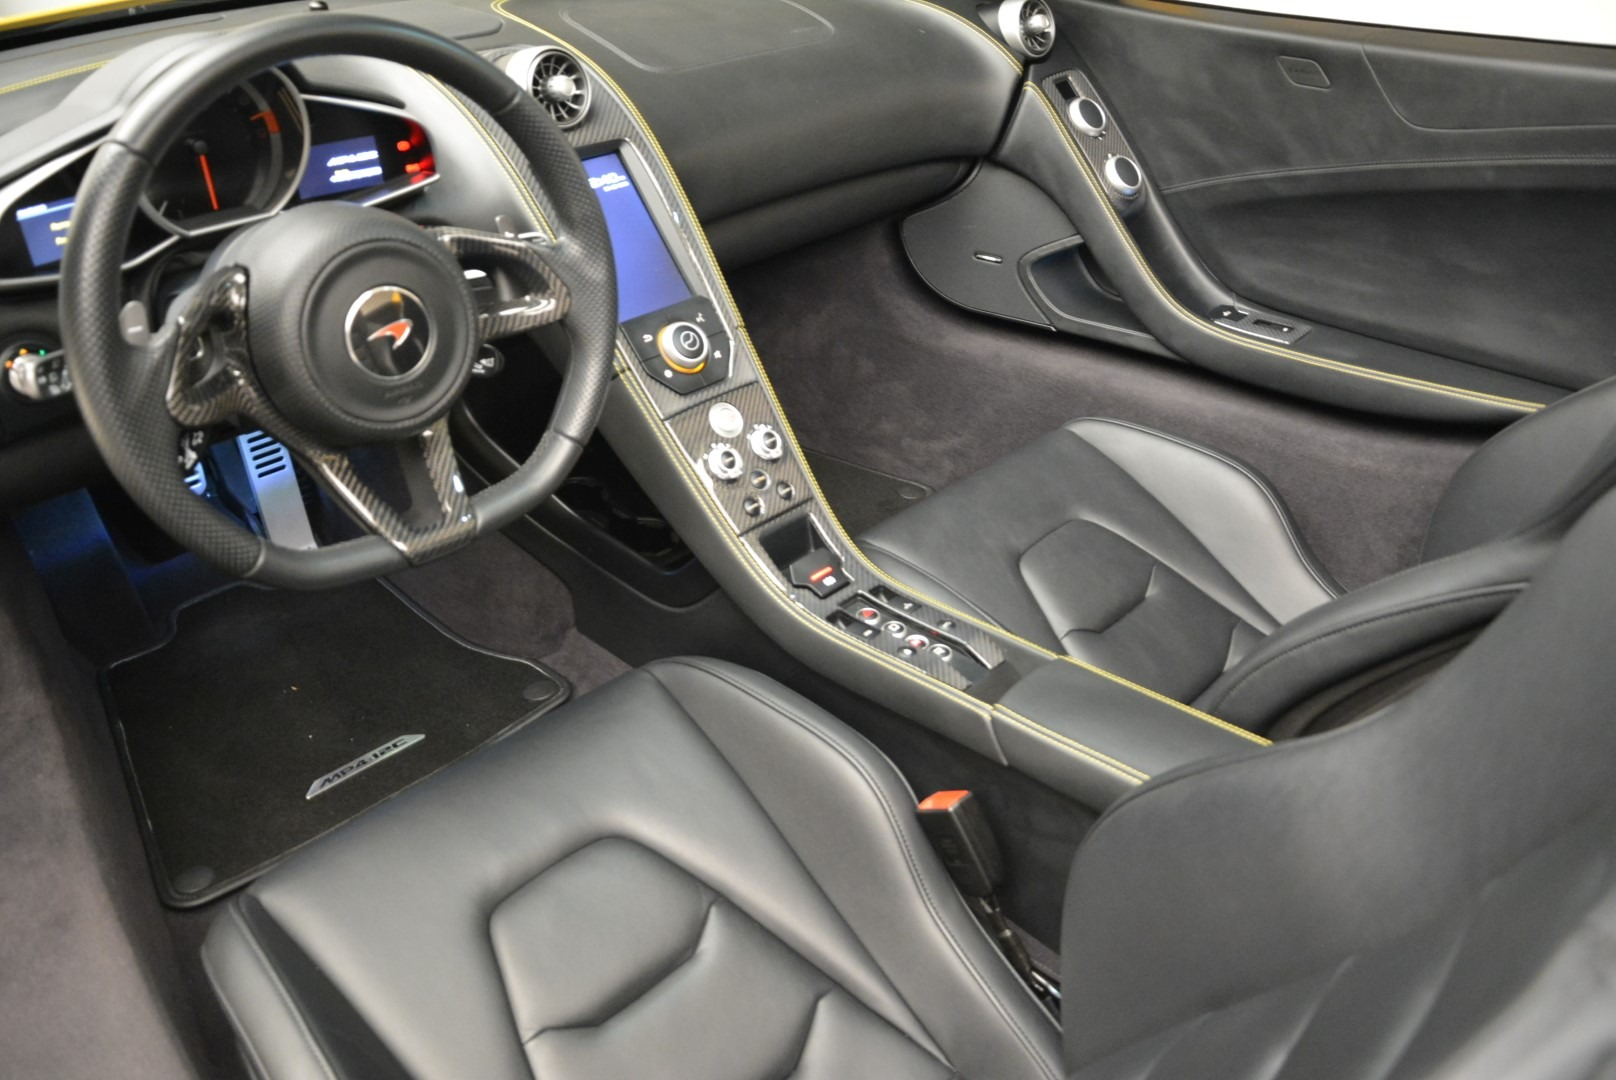 Used 2014 McLaren MP4-12C Spider For Sale In Greenwich, CT 2057_p25